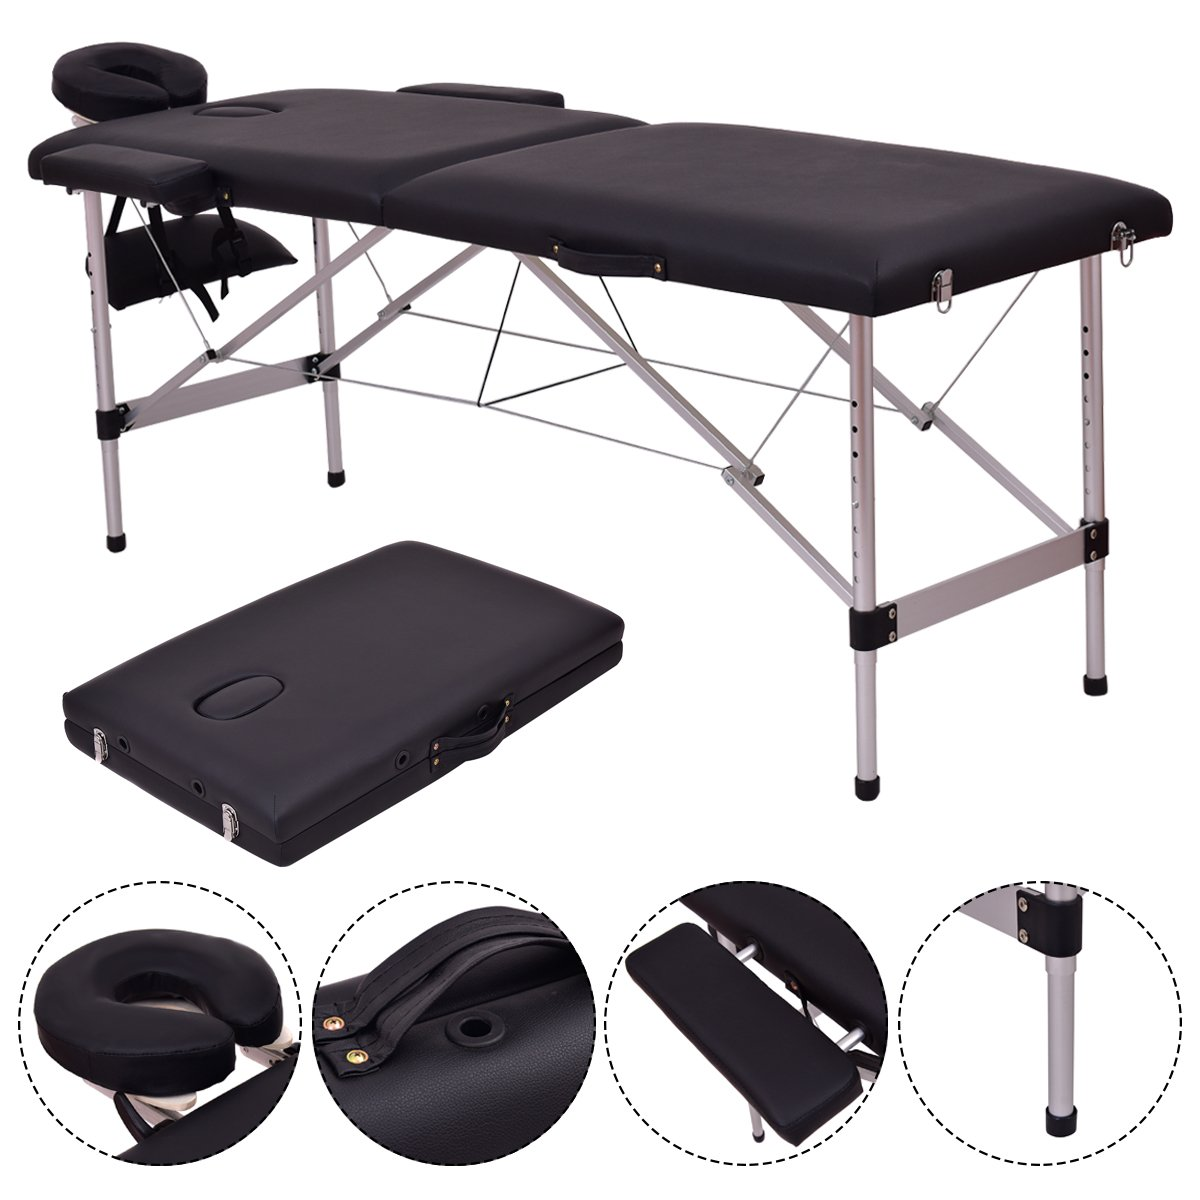 Giantex Portable Massage Table 84 L, 2 Section Facial SPA Professional Massage Bed, Aluminum Frame, Flex-Rest Face Cradle Side Armrests, Salon Massage Bed with Carry Case